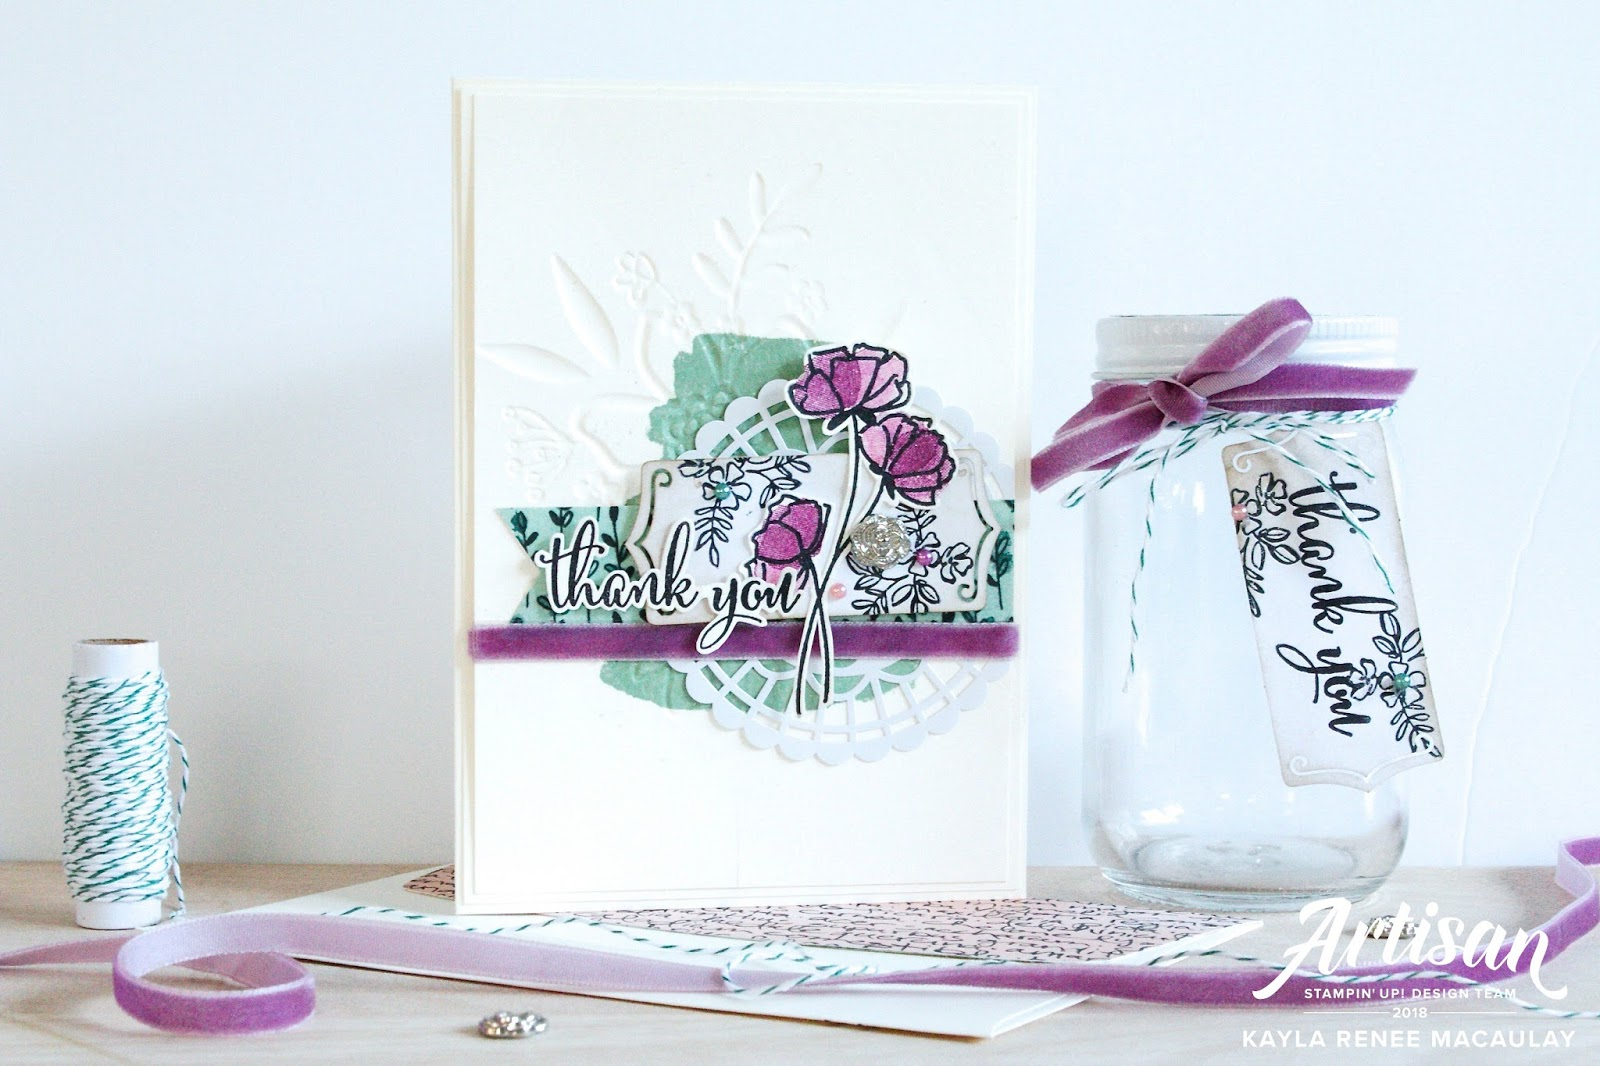 Share What You Love – Stampin' Up! Artisan Blog Hop Two